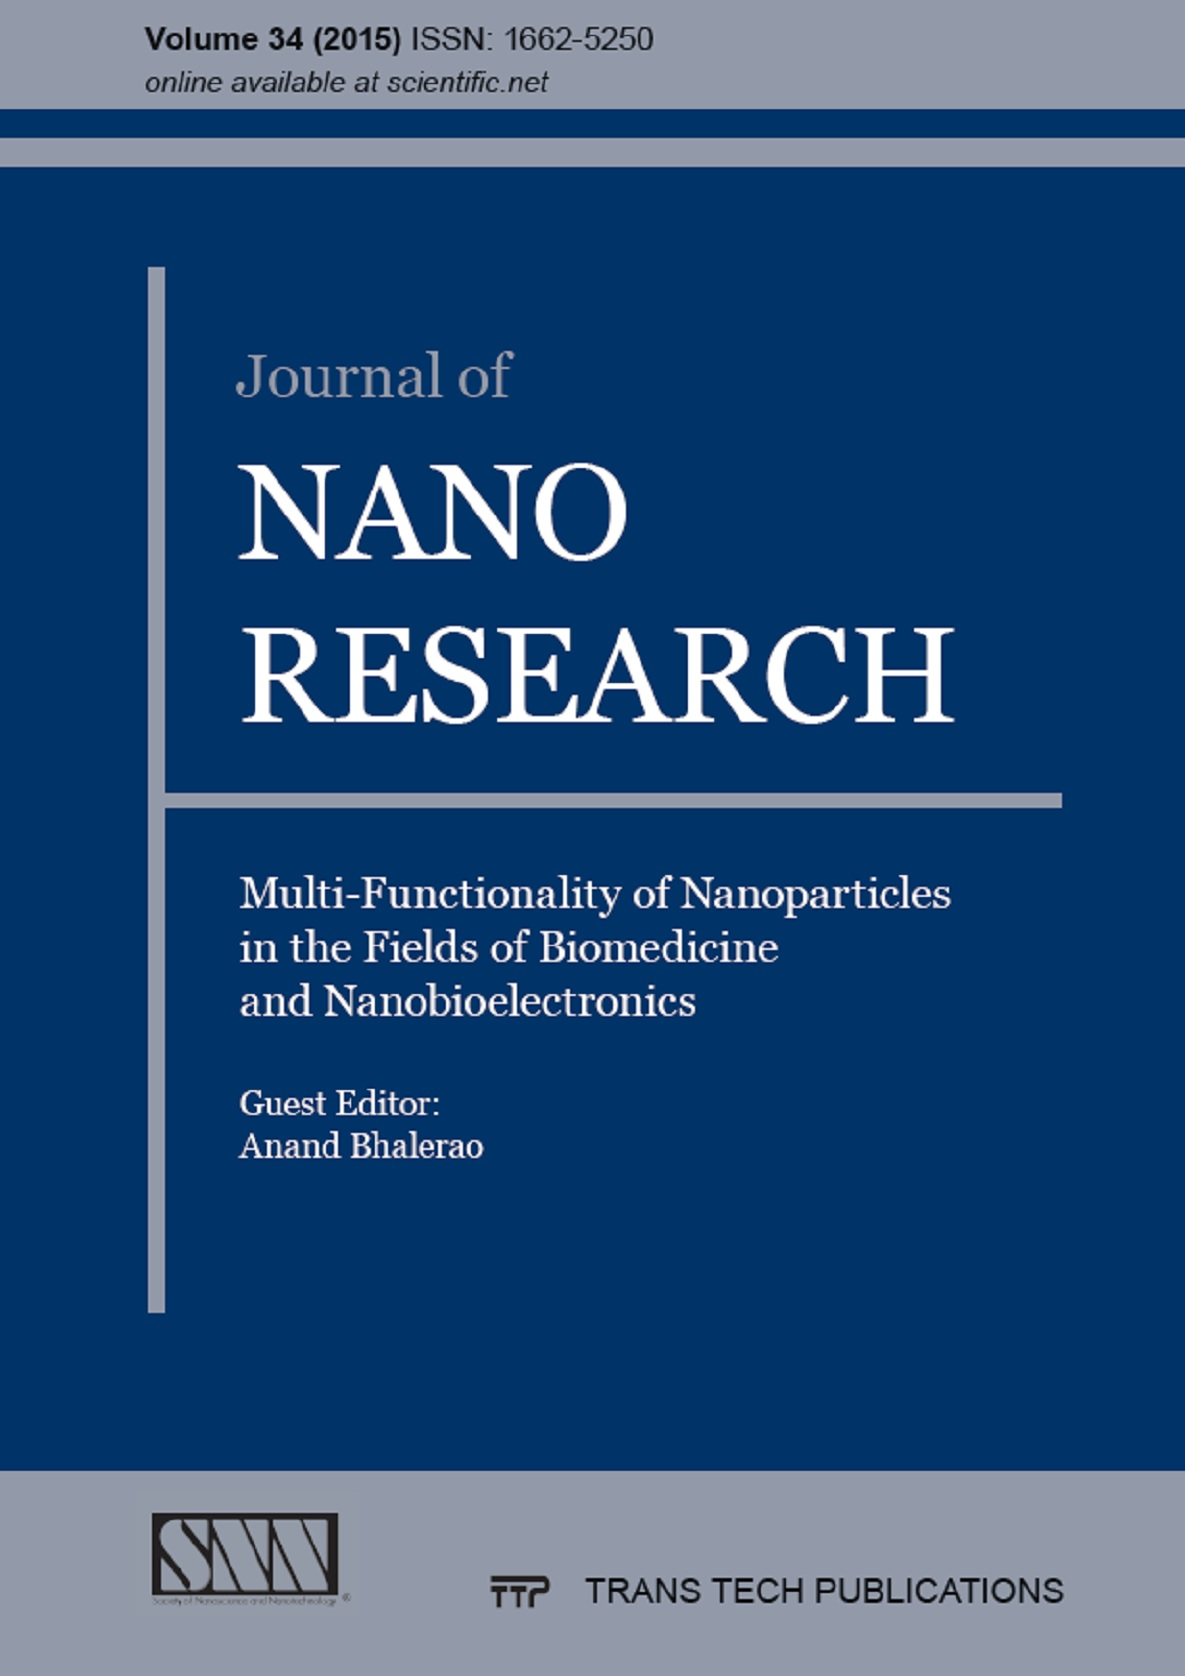 Journal of Nano Research Vol. 34